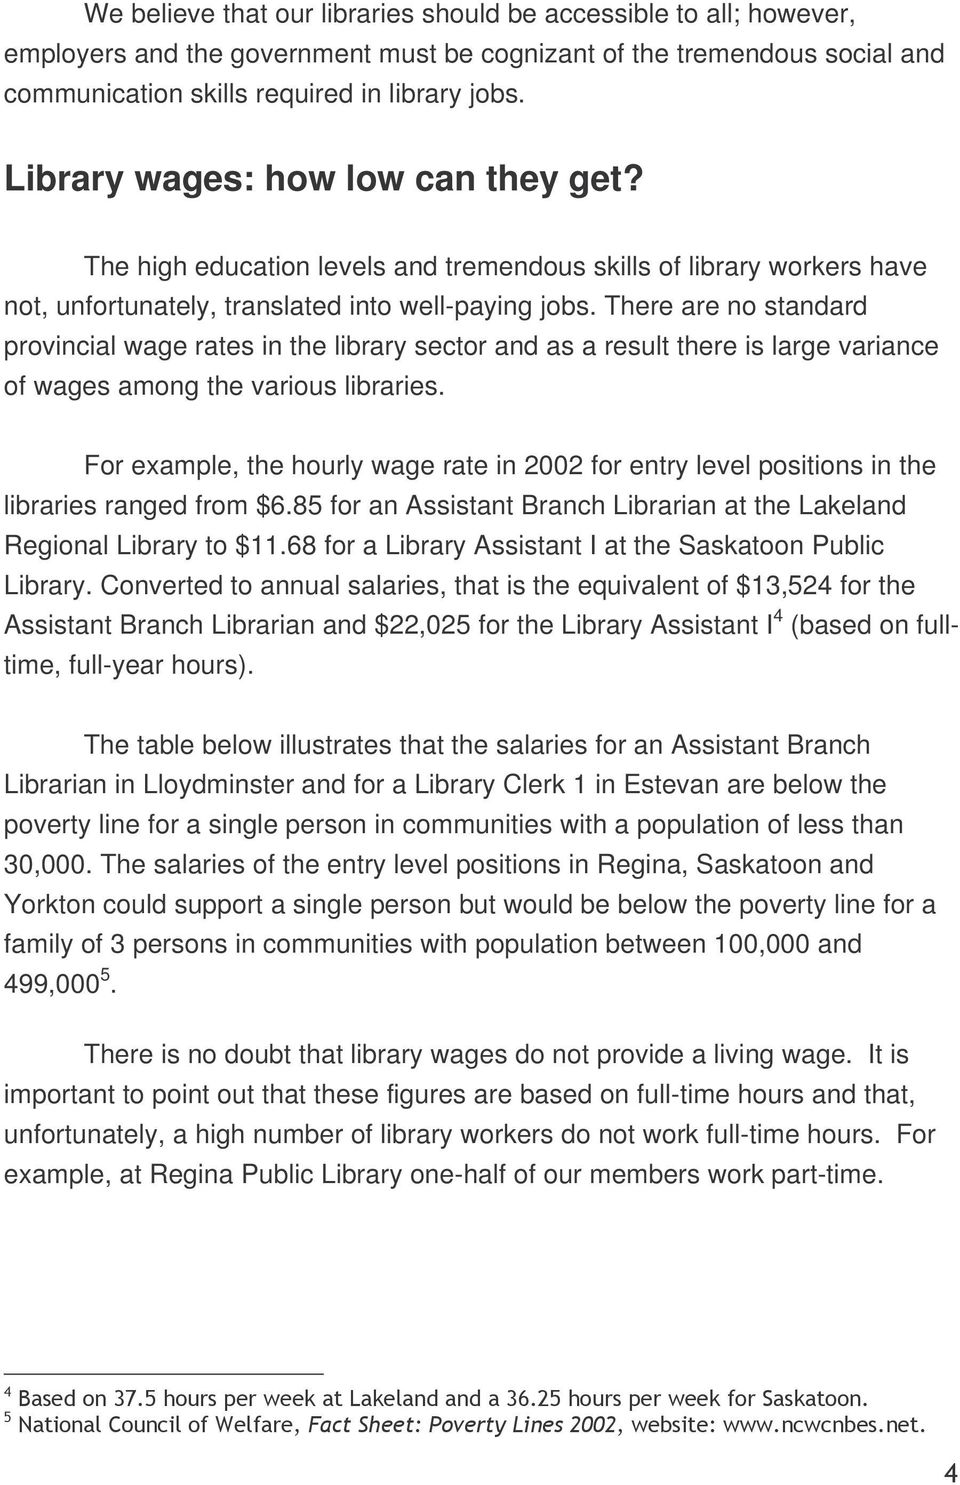 Long Overdue: Pay Equity for Library Workers - PDF